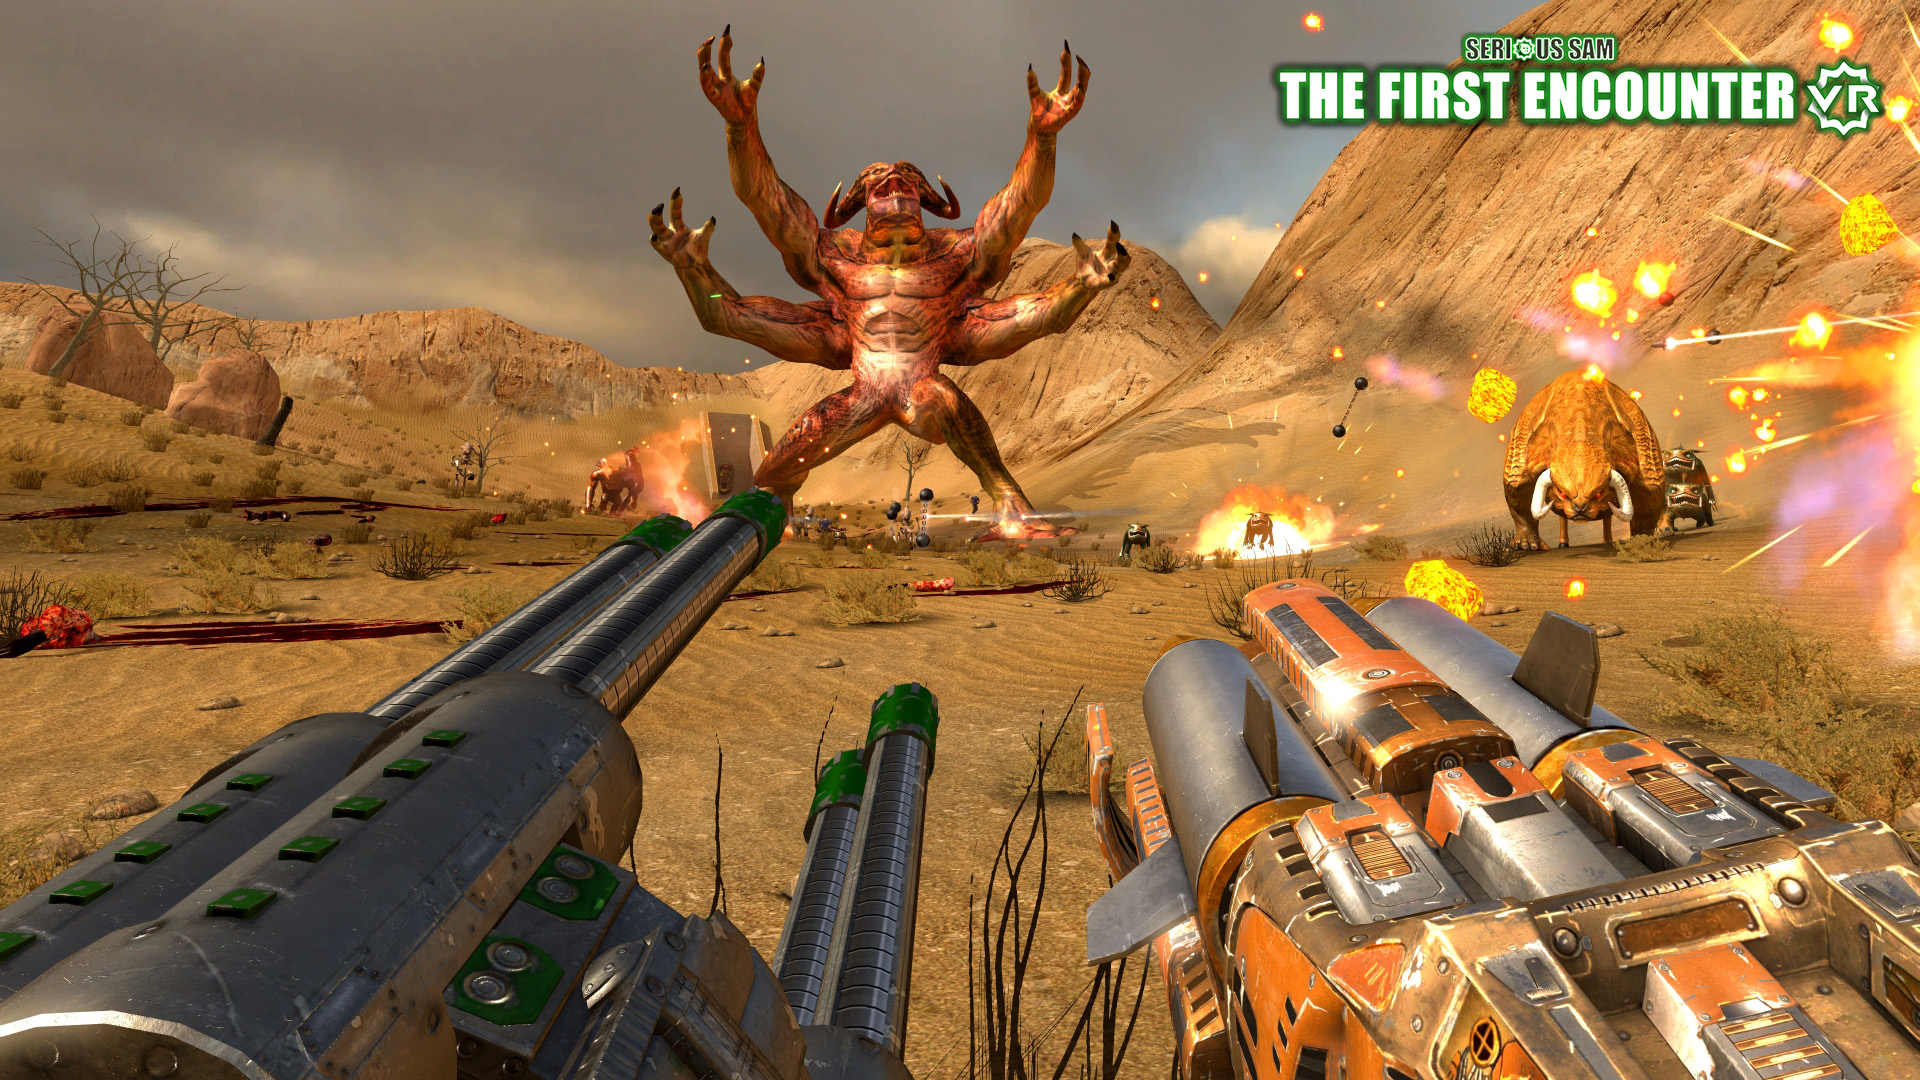 serious sam 2 free download full version pc for windows 7